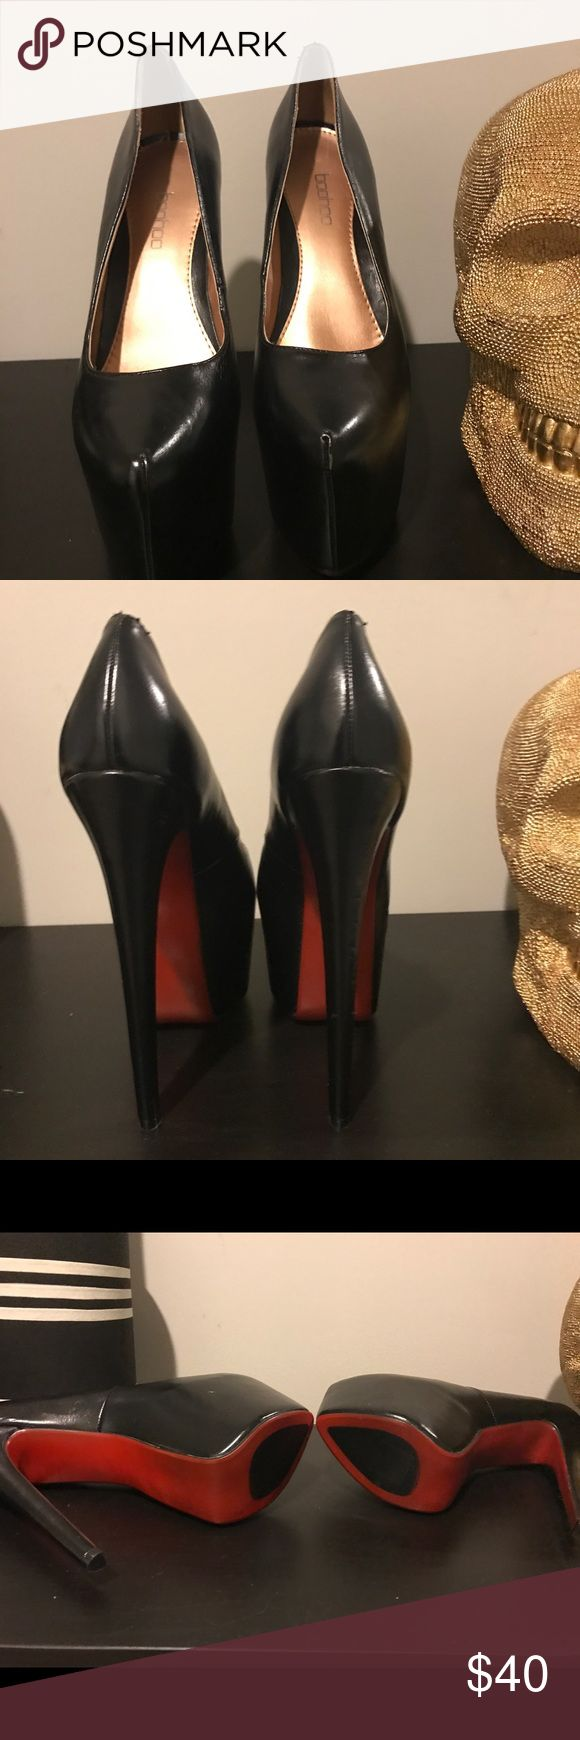 Black Platform heel with red bottom 7 inch heel with 3 inch platform. This shoe has never been worn before. The box read size 10 but definitely fit like a solid 9! I no longer have the box, but shoes are in perfect condition. NWOT Boohoo Shoes Heels